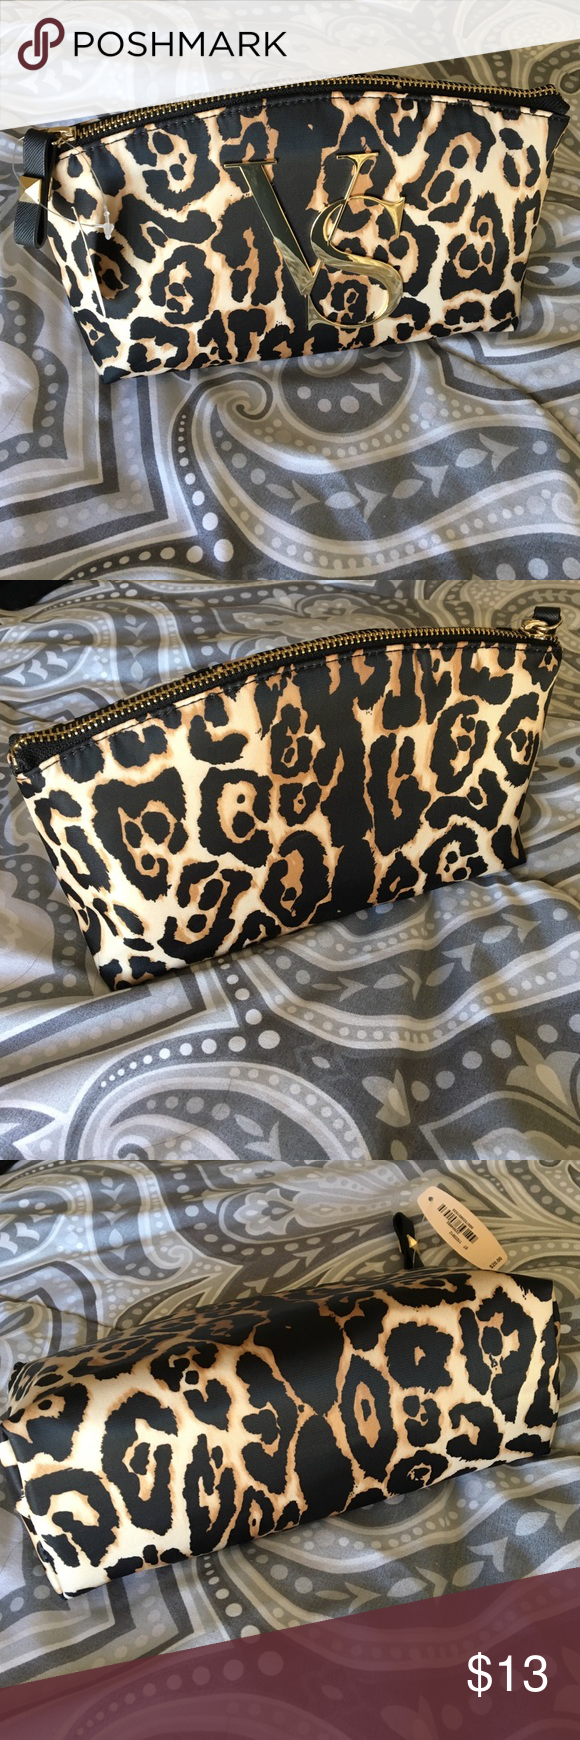 Victoria Secret Travel Makeup Bag Victoria Secret Travel Makeup Bag - nwt Victoria's Secret Bags Cosmetic Bags & Cases